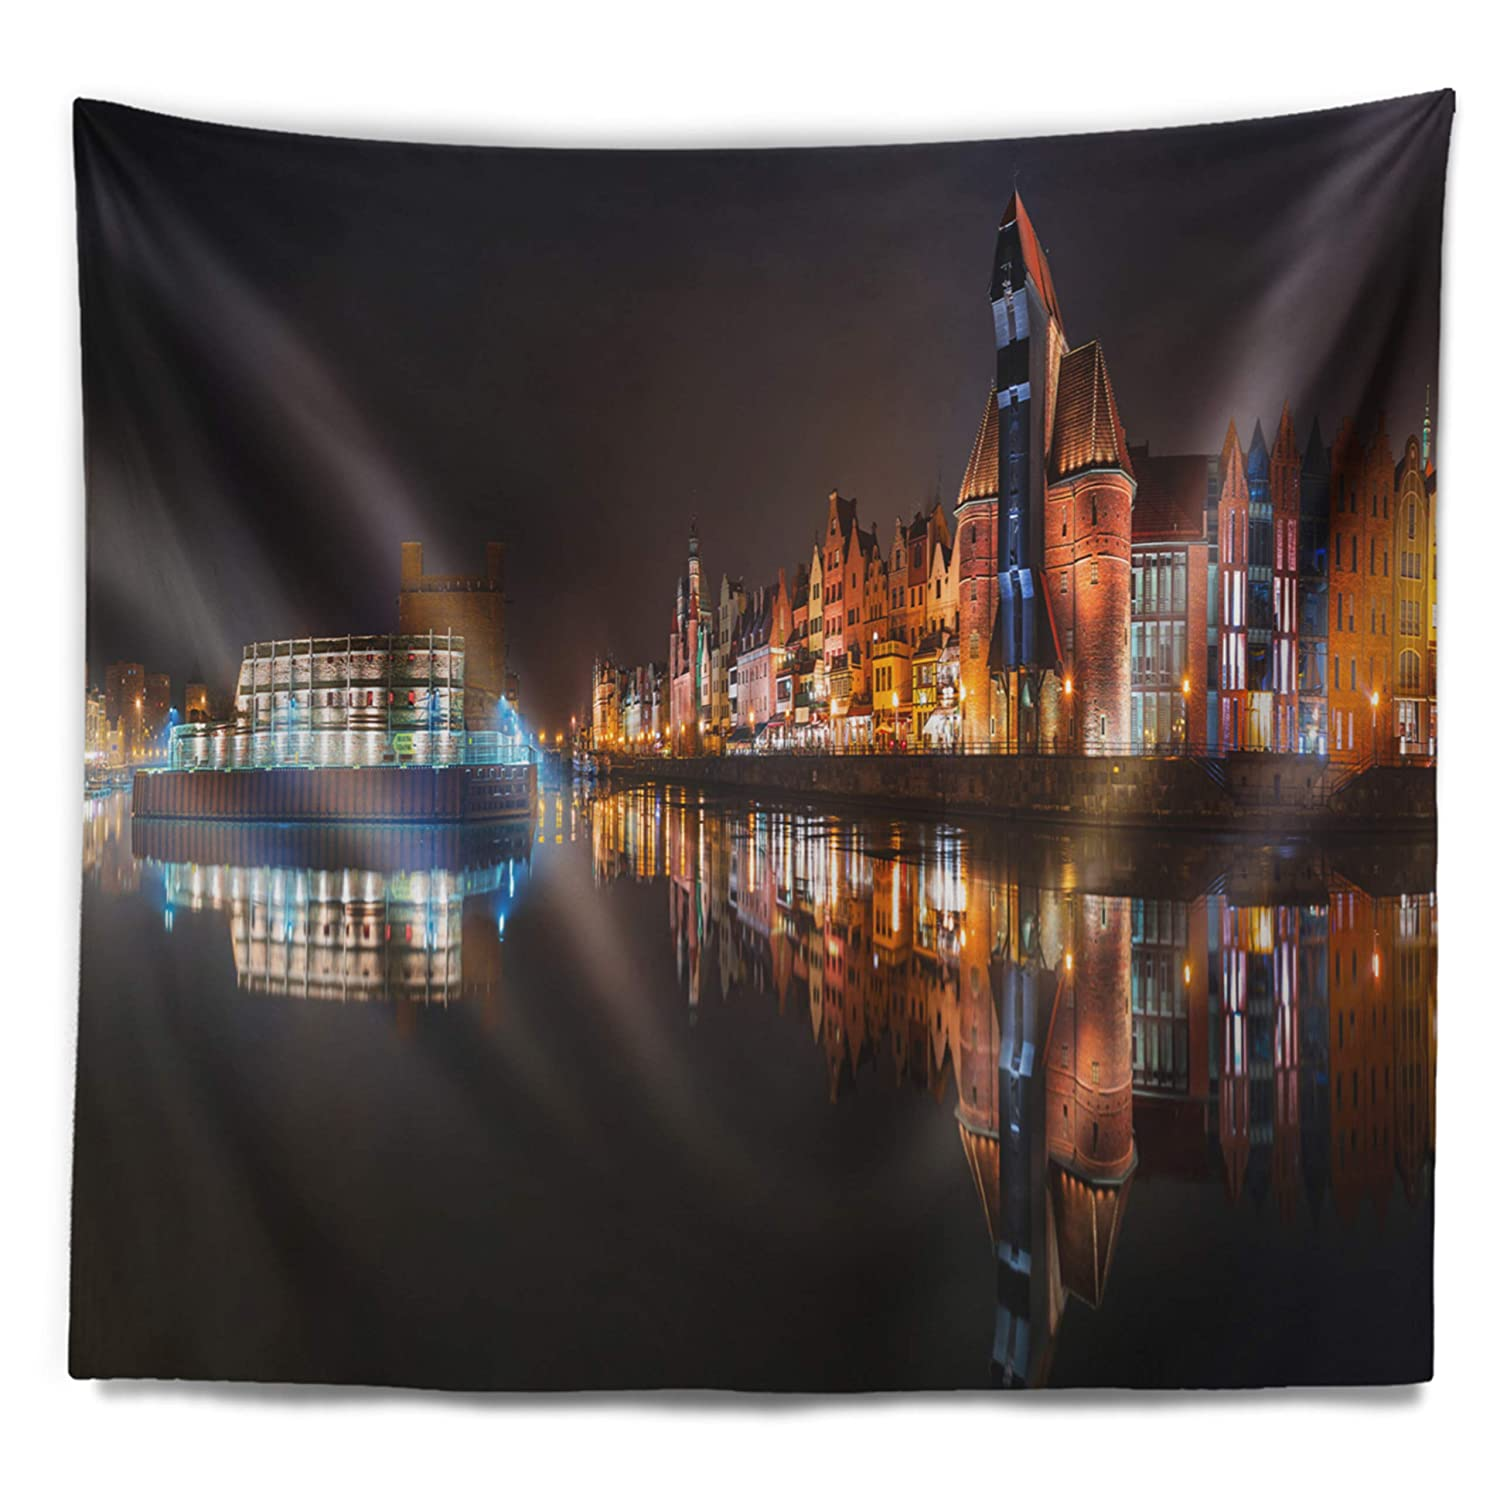 Designart TAP7584-39-32  Panorama of Gdansk Old Town Landscape Photography Blanket D/écor Art for Home and Office Wall Tapestry Medium 39 x 32 Created On Lightweight Polyester Fabric